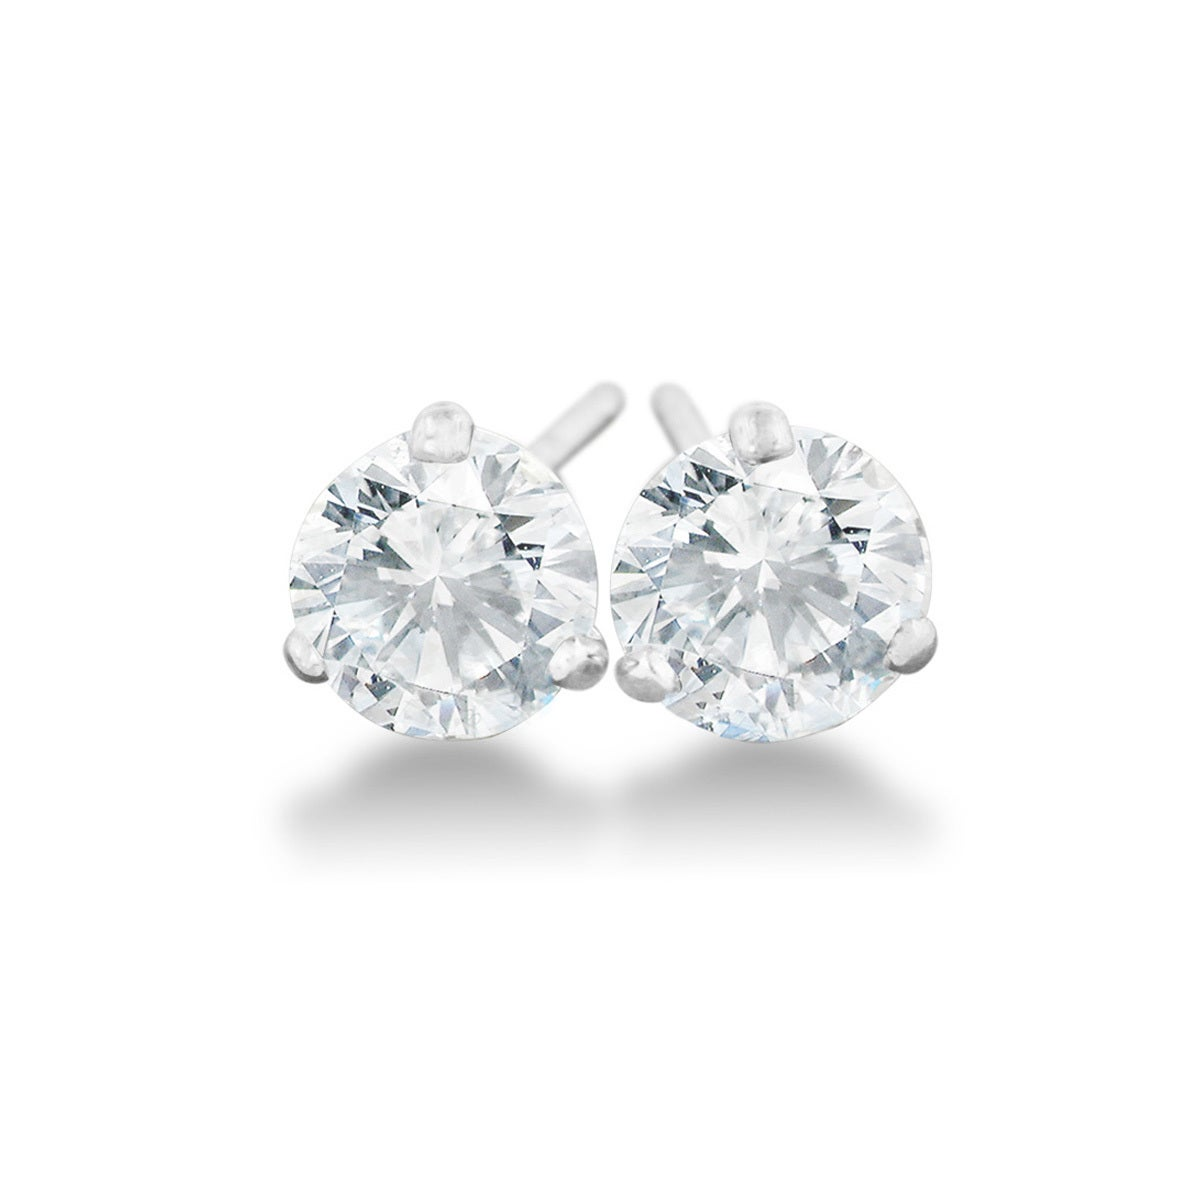 9a6c856b3 Shop 1/2 Carat Diamond Martini Stud Earrings In 14 Karat White Gold, (J-K,  I2-I3) - Free Shipping Today - Overstock - 10175296